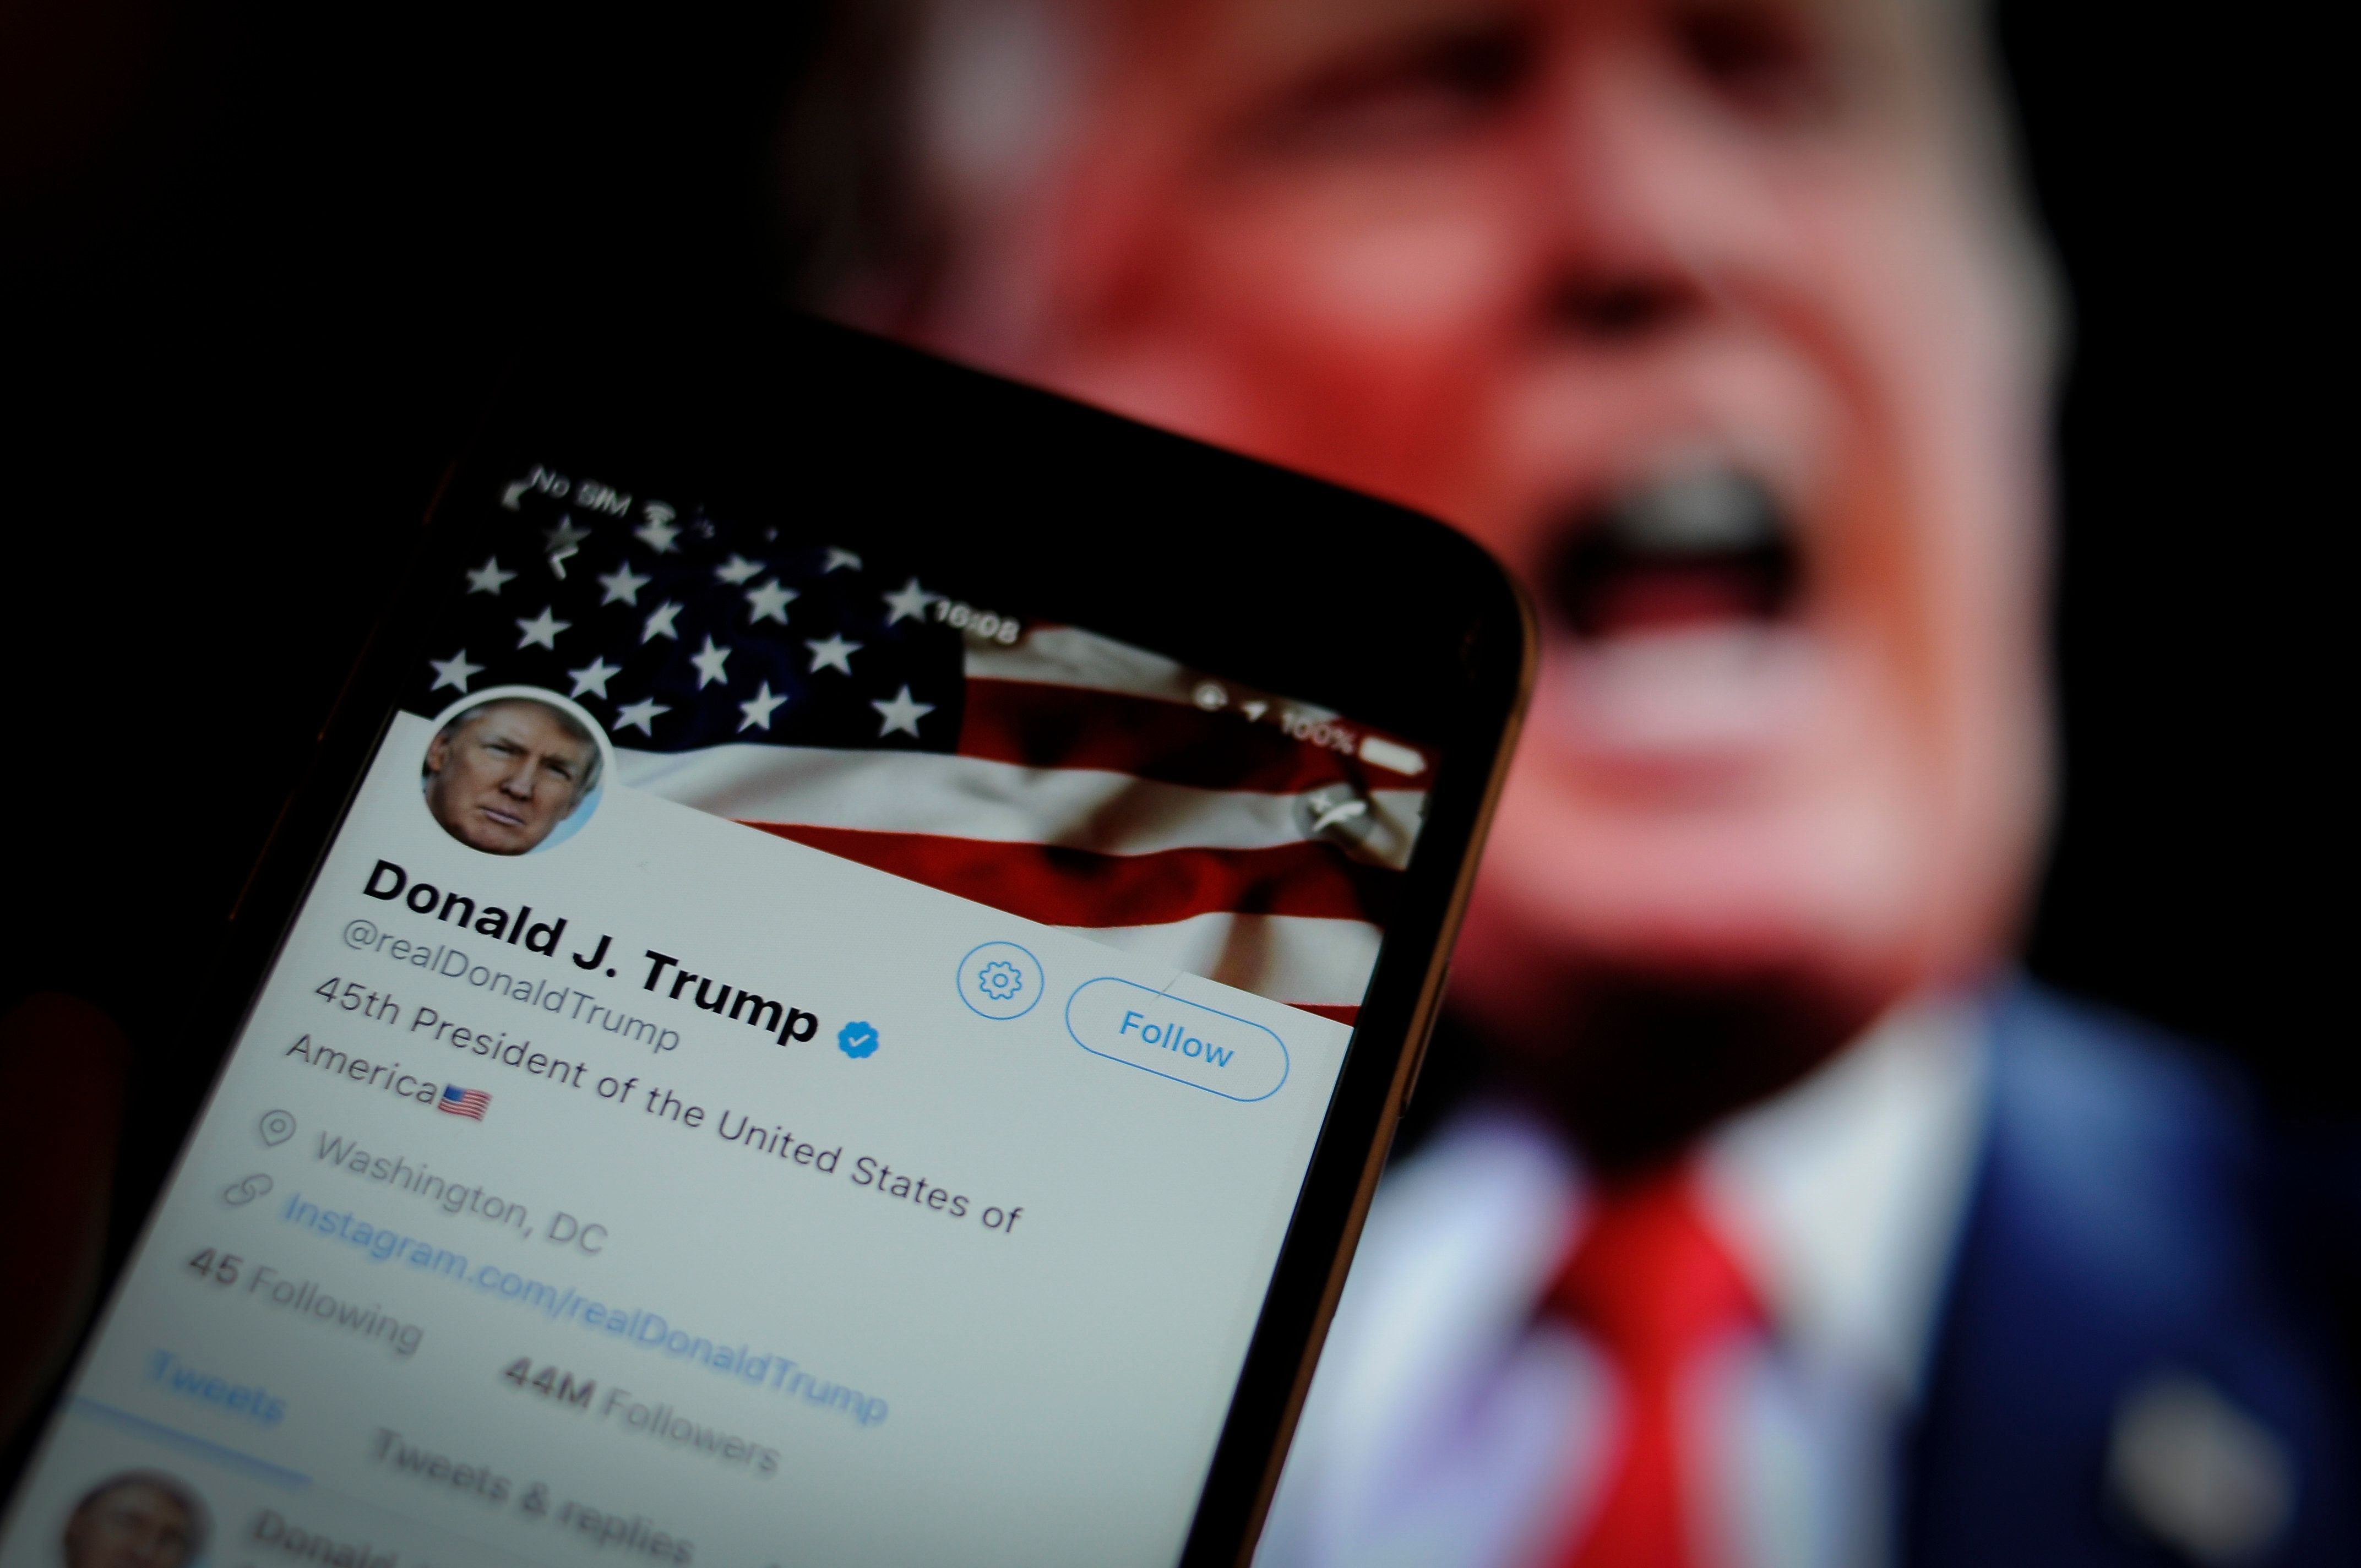 The Twitter app is seen with an image of US president Donald Trump in the background in this photo illustration on December 4, 2017. (Photo by Jaap Arriens/NurPhoto via Getty Images)